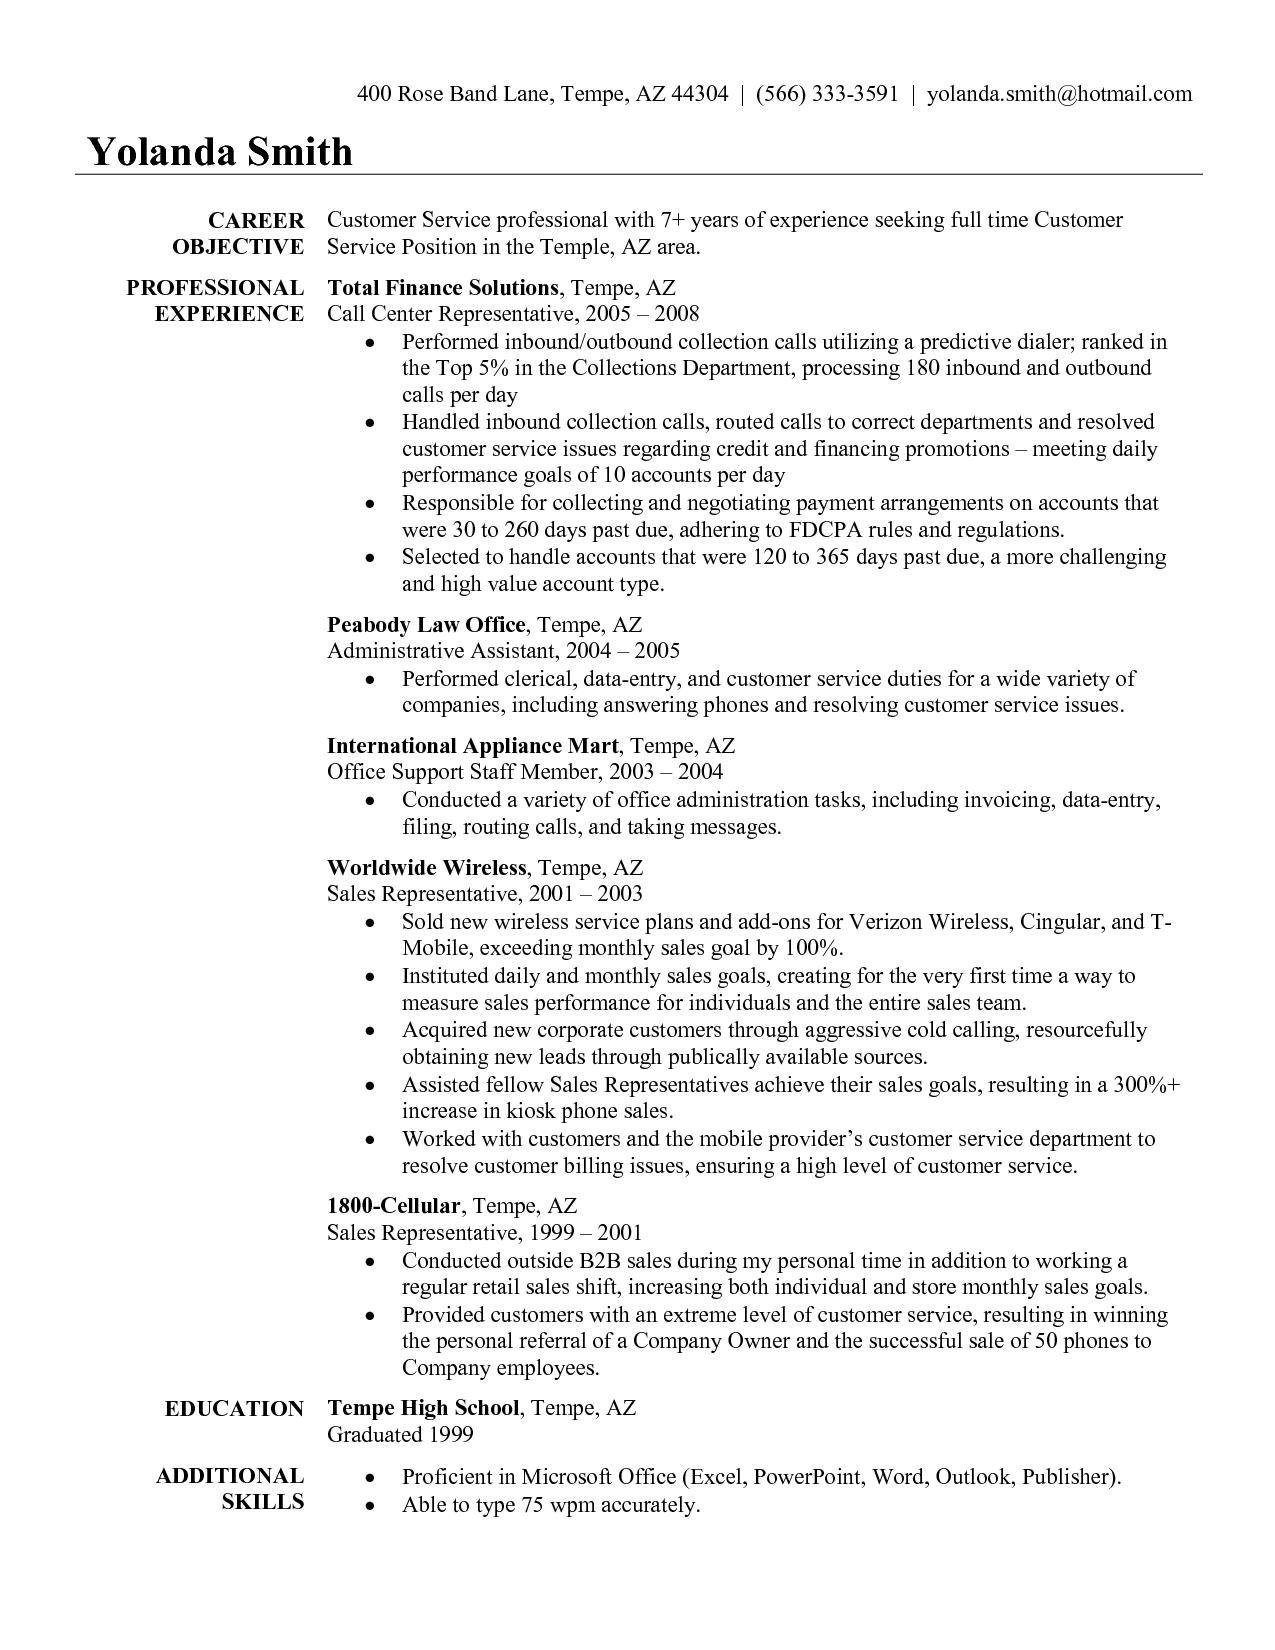 Resume Examples Objectives Traffic Customer Resume Examplescustomer Service Resume Examples